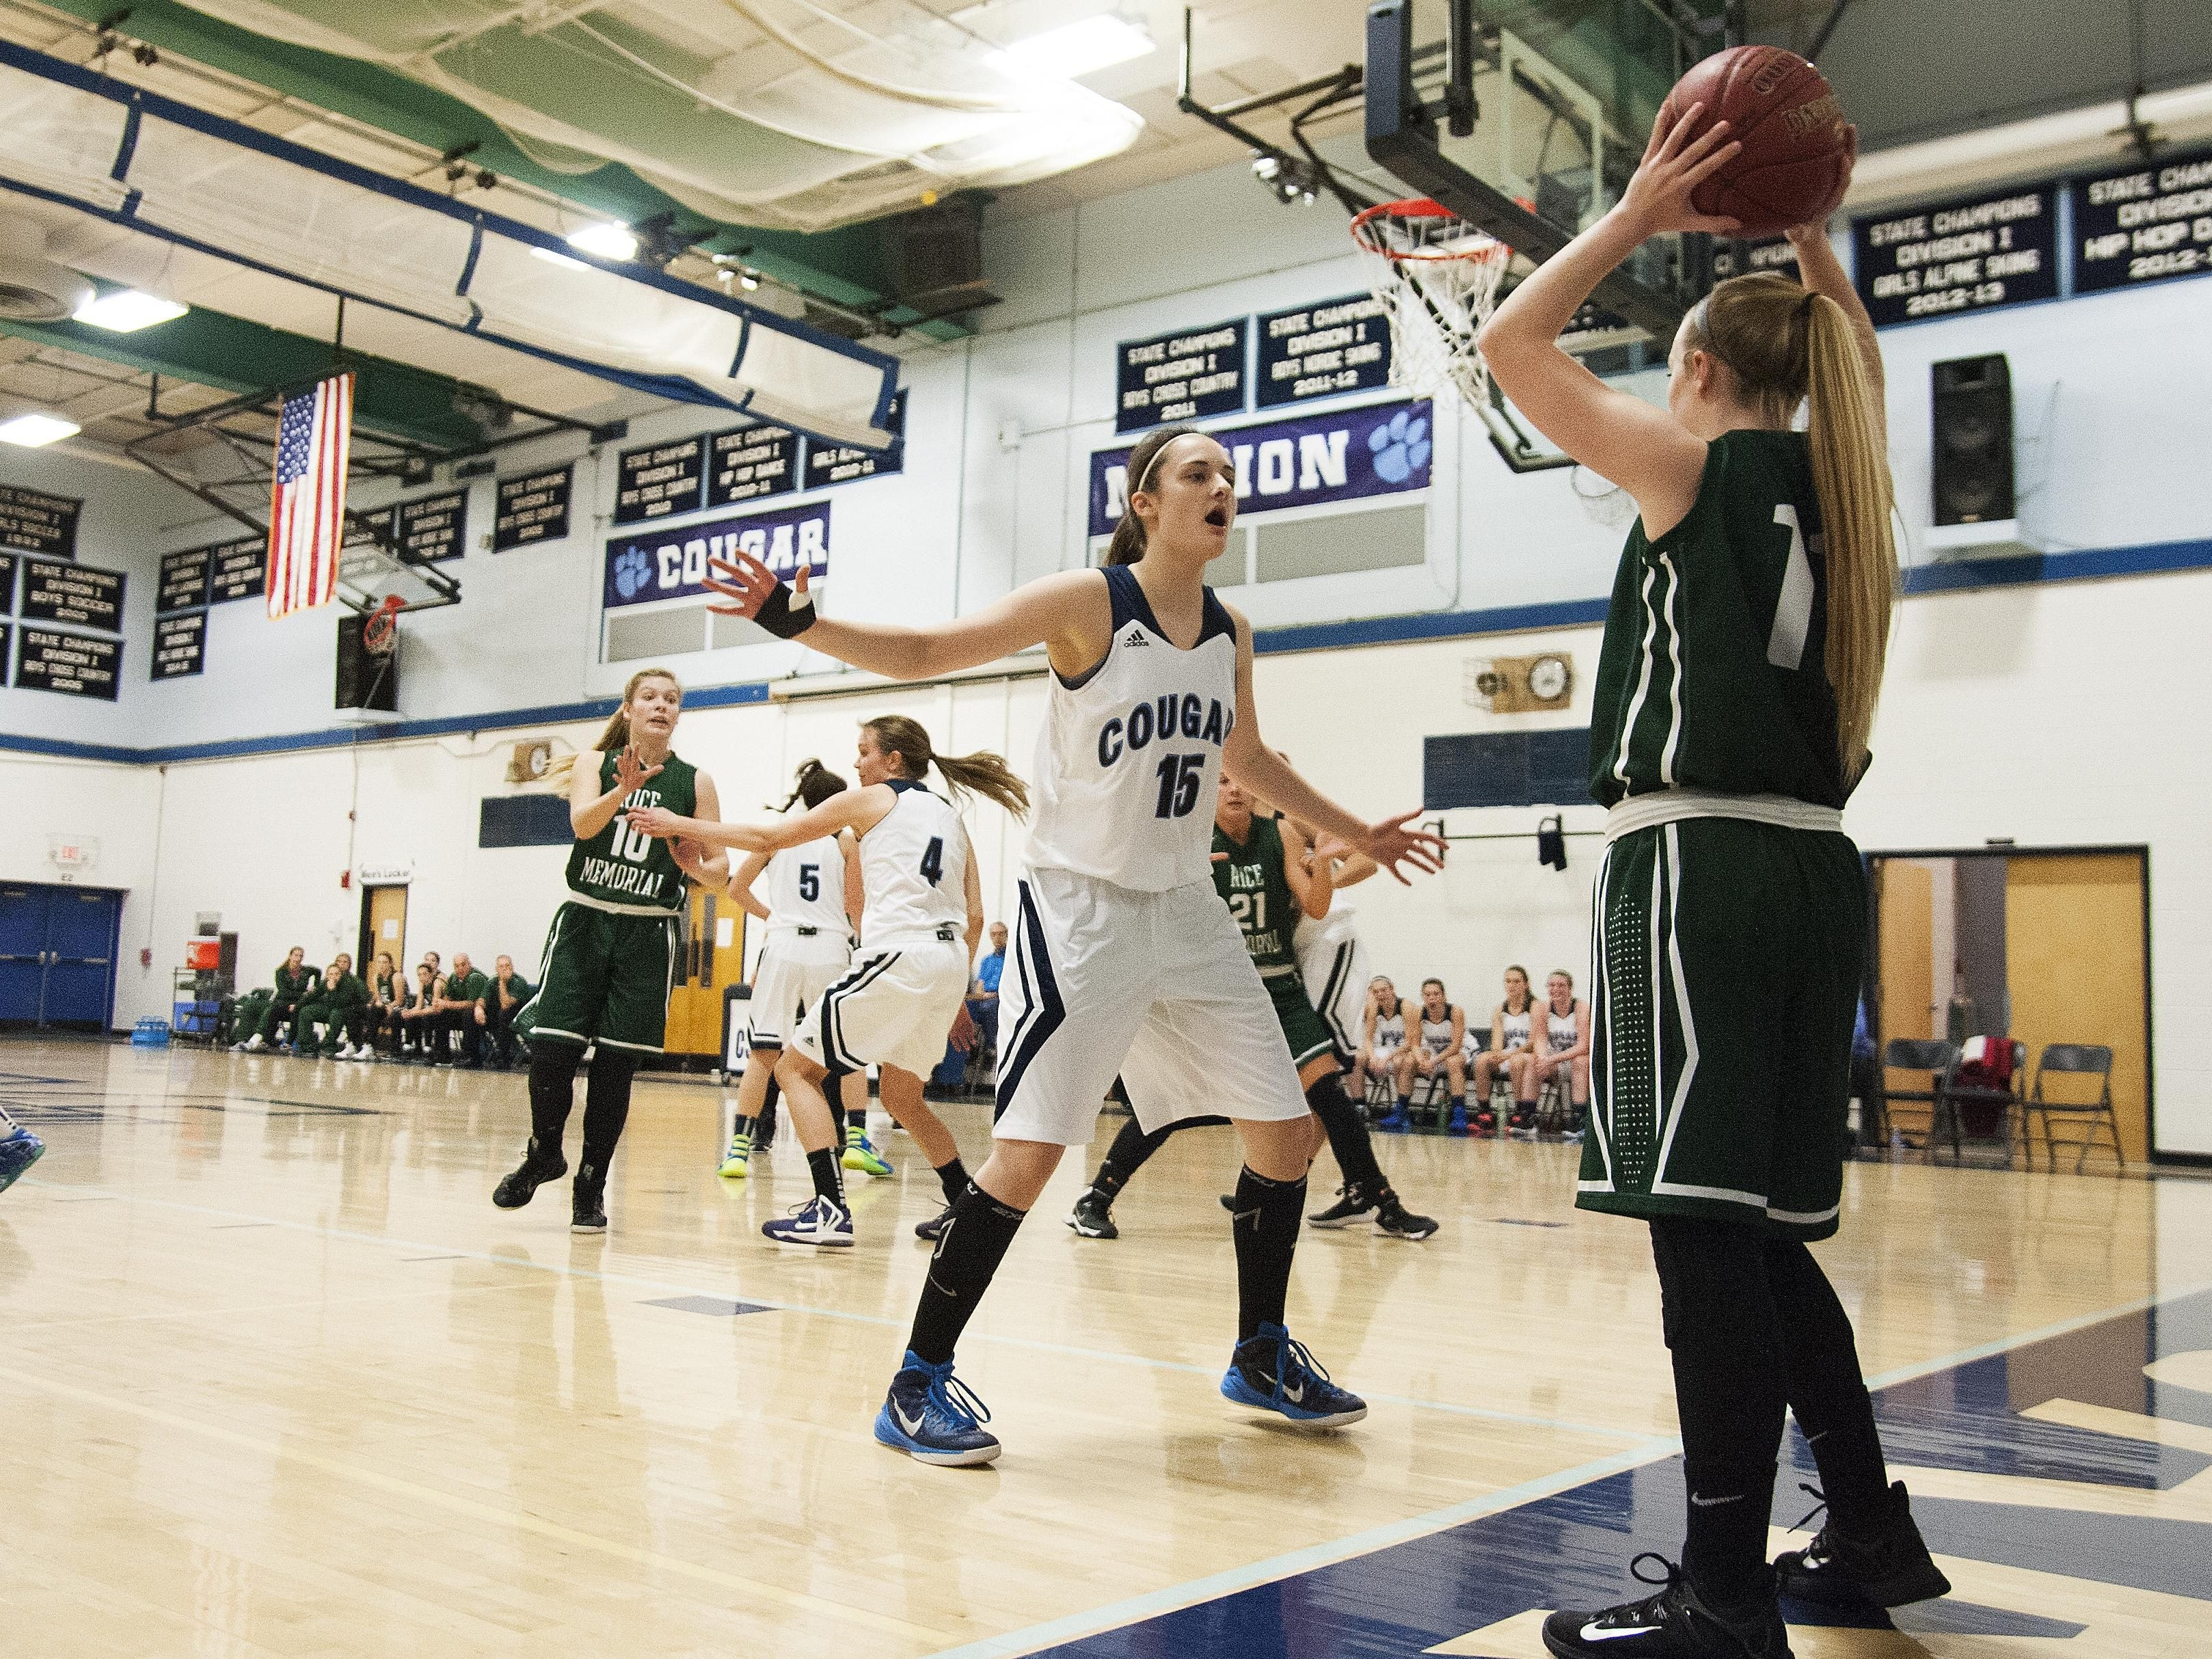 Mount Mansfield forward Lexi Mousley (15) guards Rice guard Jordan Lawrence (11) as she tries to throw the ball in bounds during the girls basketball game between the Rice Green knights and the Mount Mansfield Cougars at MMU High School on Friday night December 4, 2015 in Jericho.